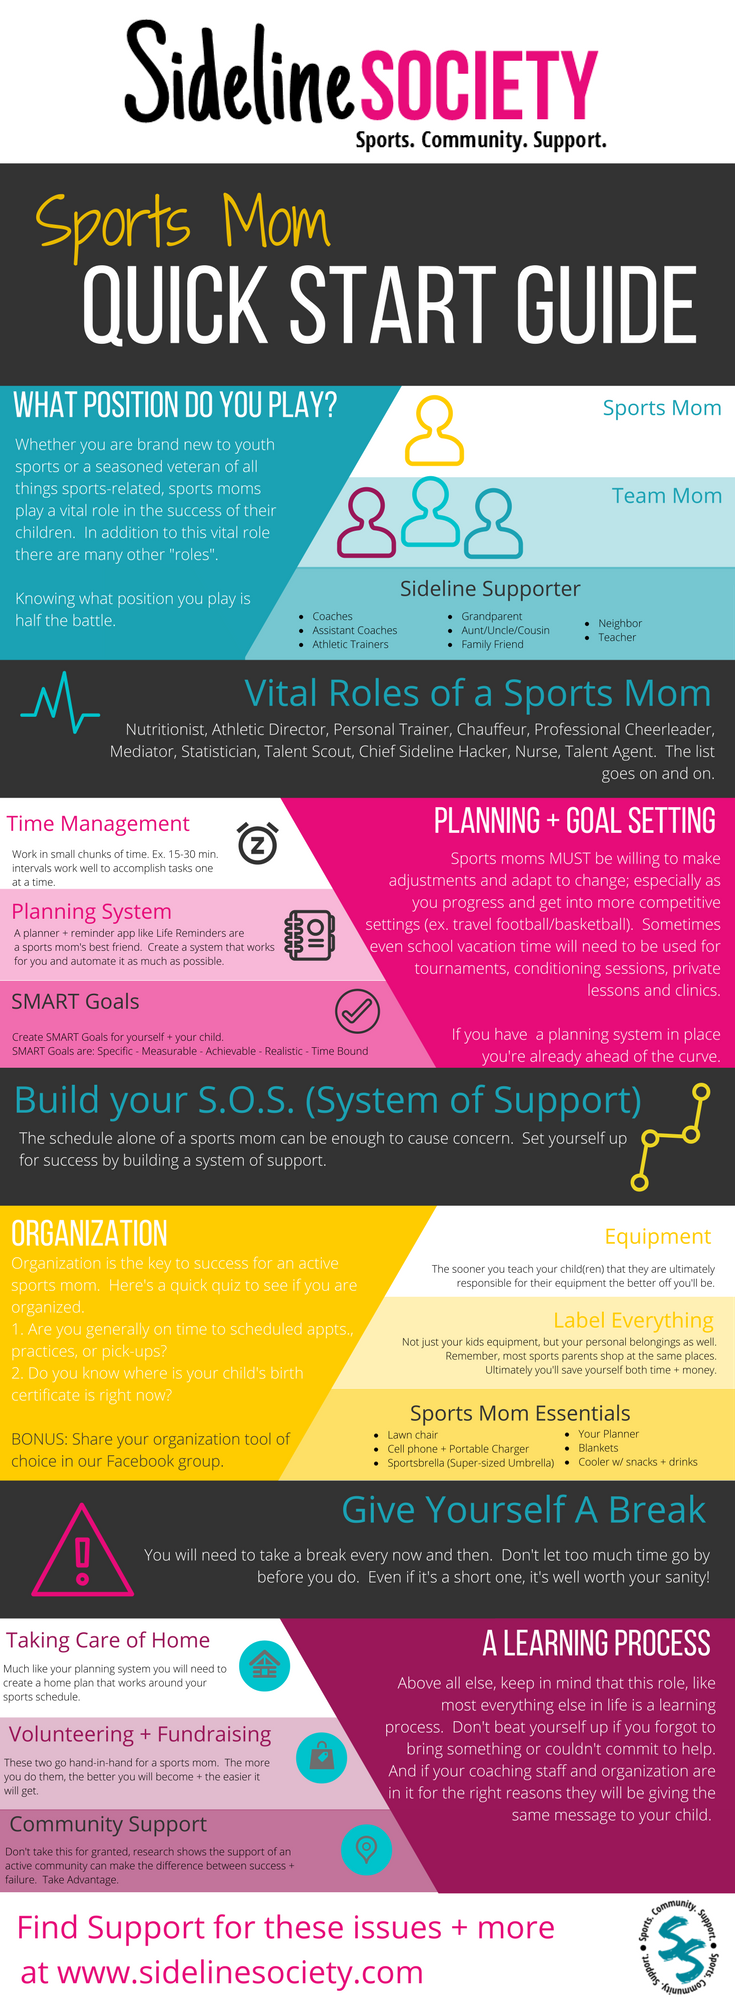 Sports Mom Quick Start Guide